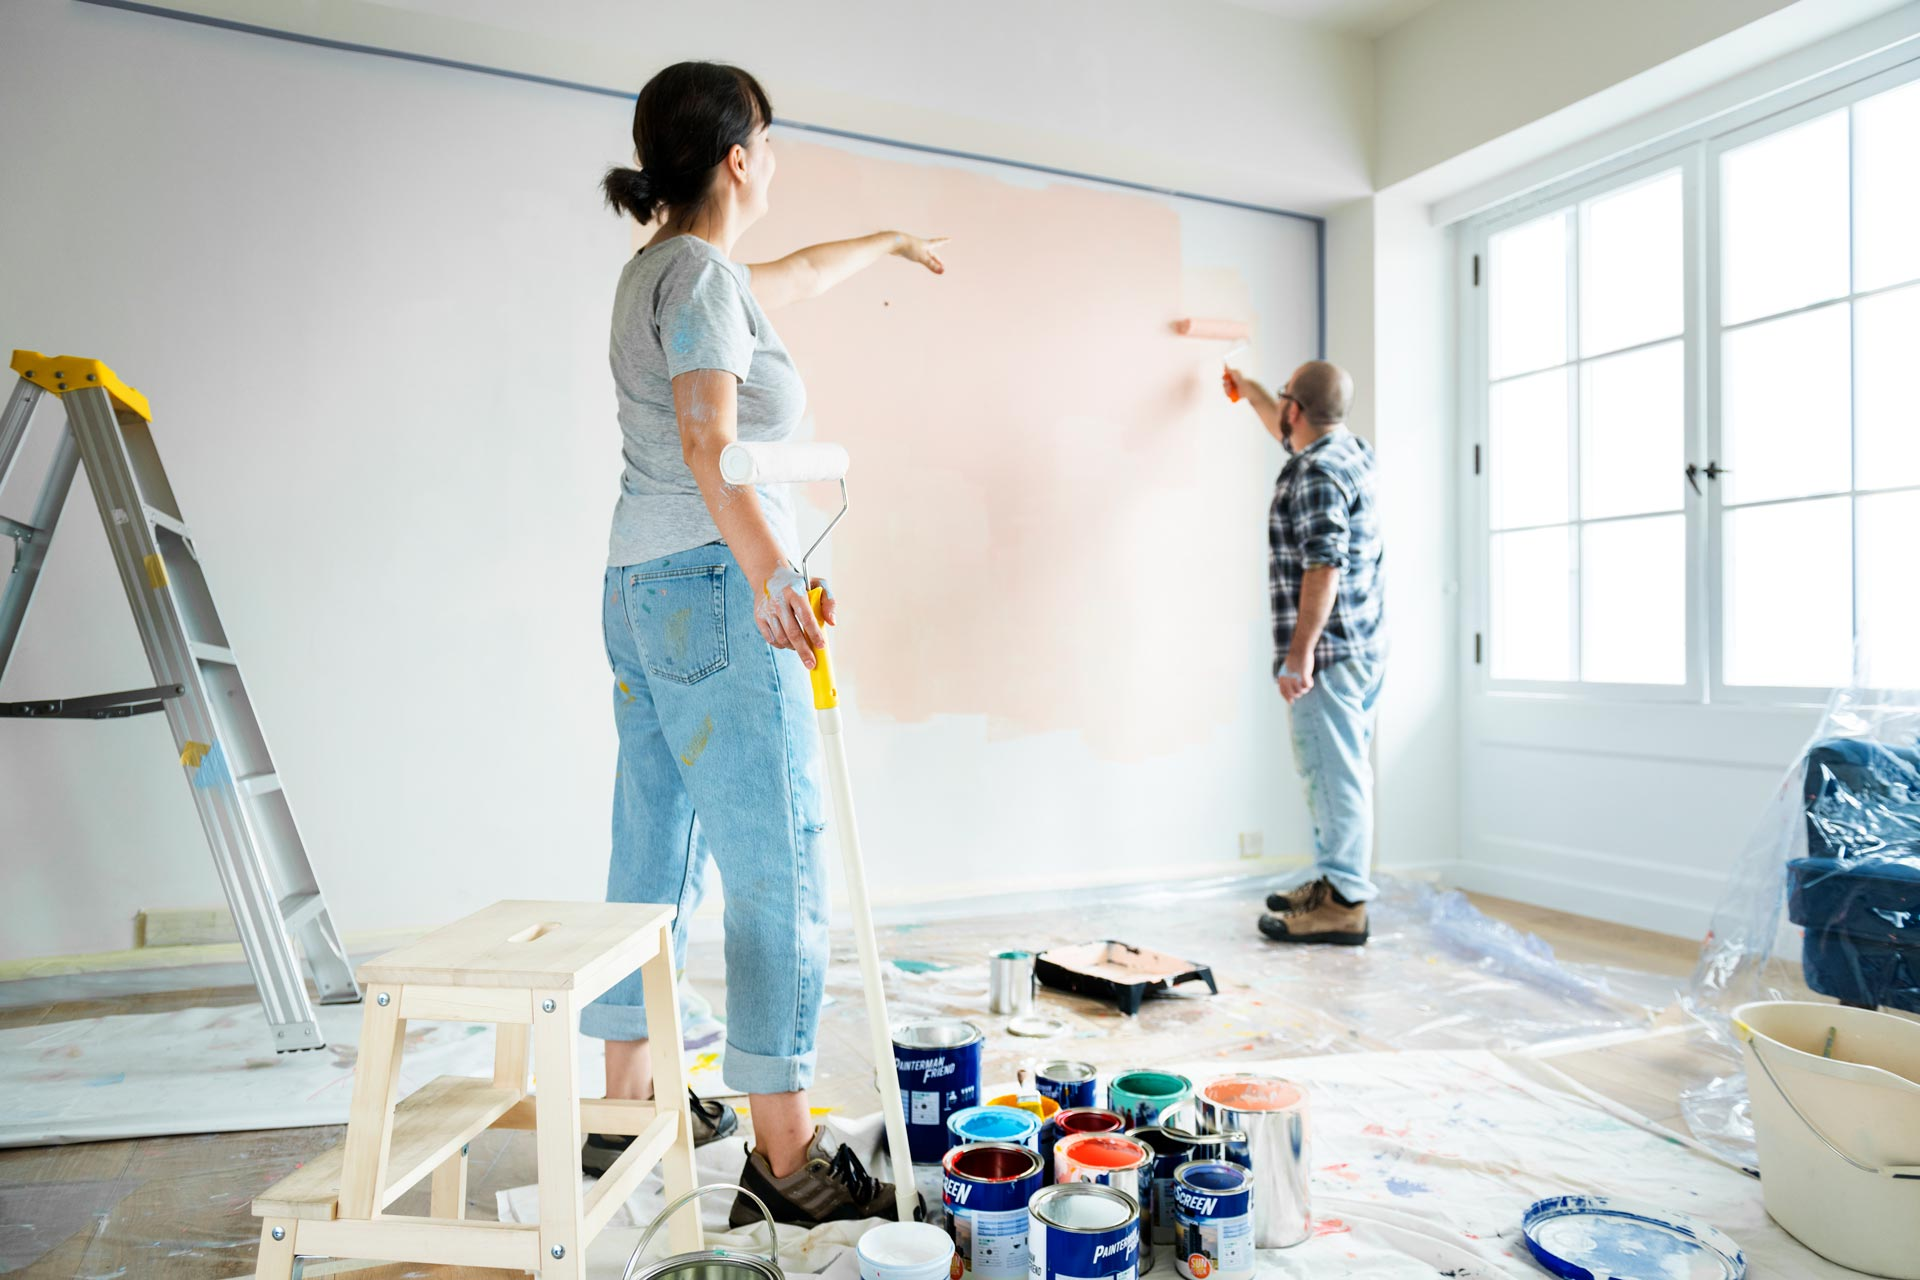 How to Get the Most Out of Your Condo Renovation?